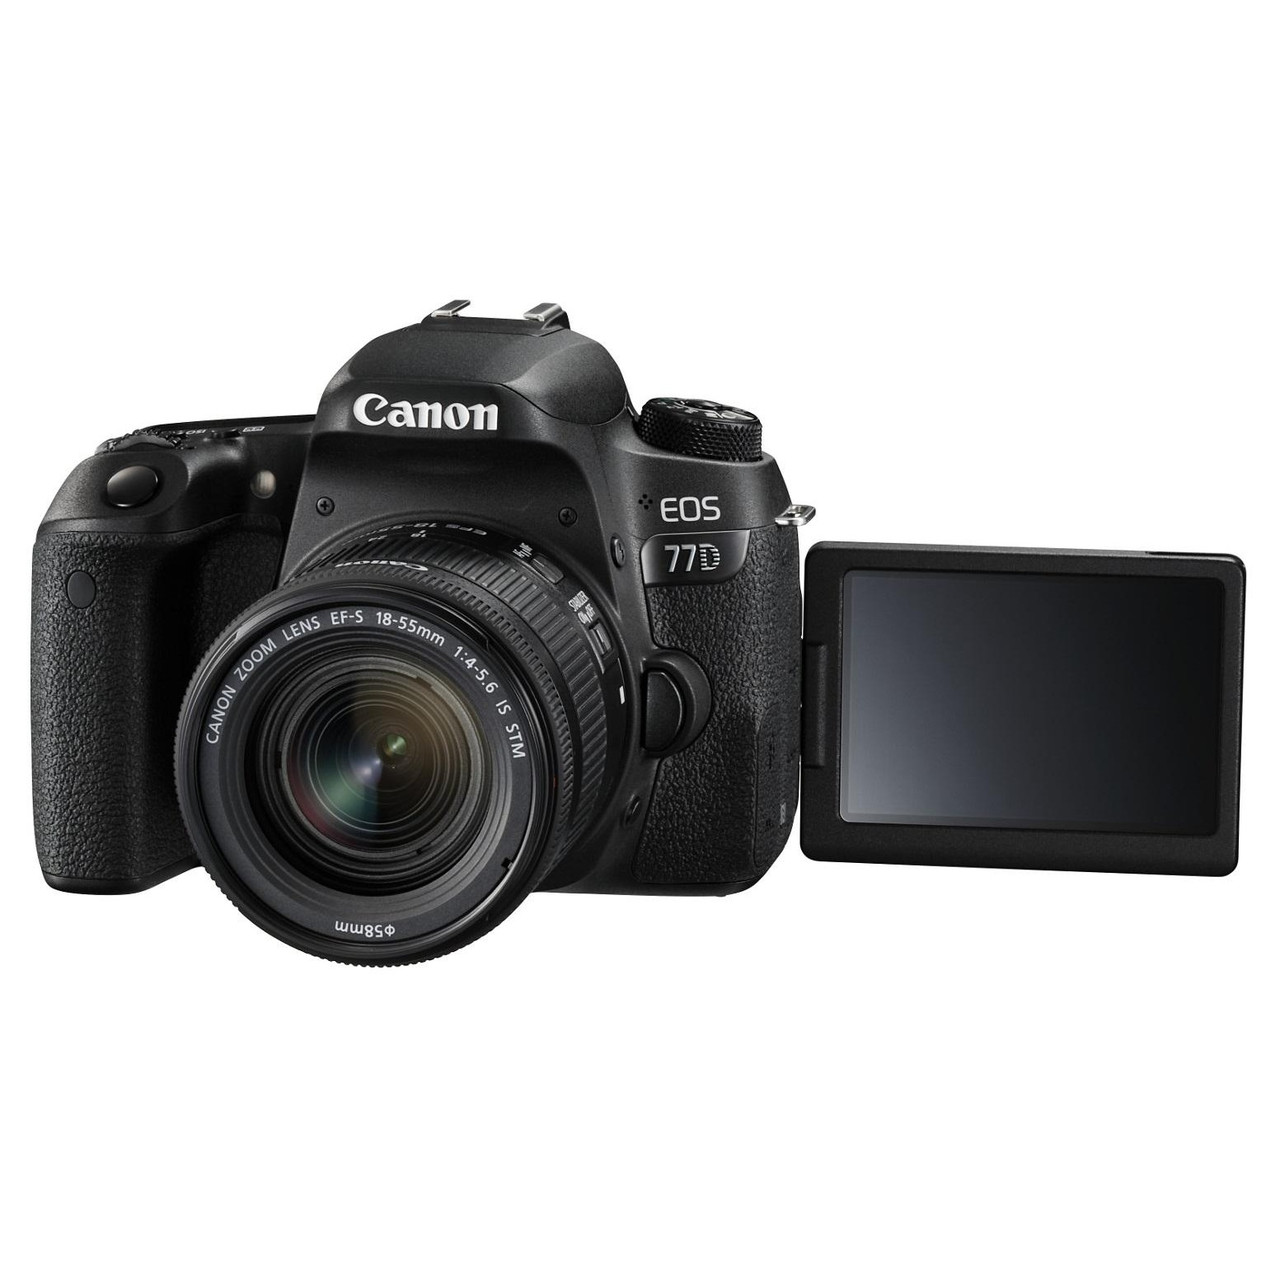 Зеркальный фотоаппарат Canon EOS 77D kit (18-55mm) IS